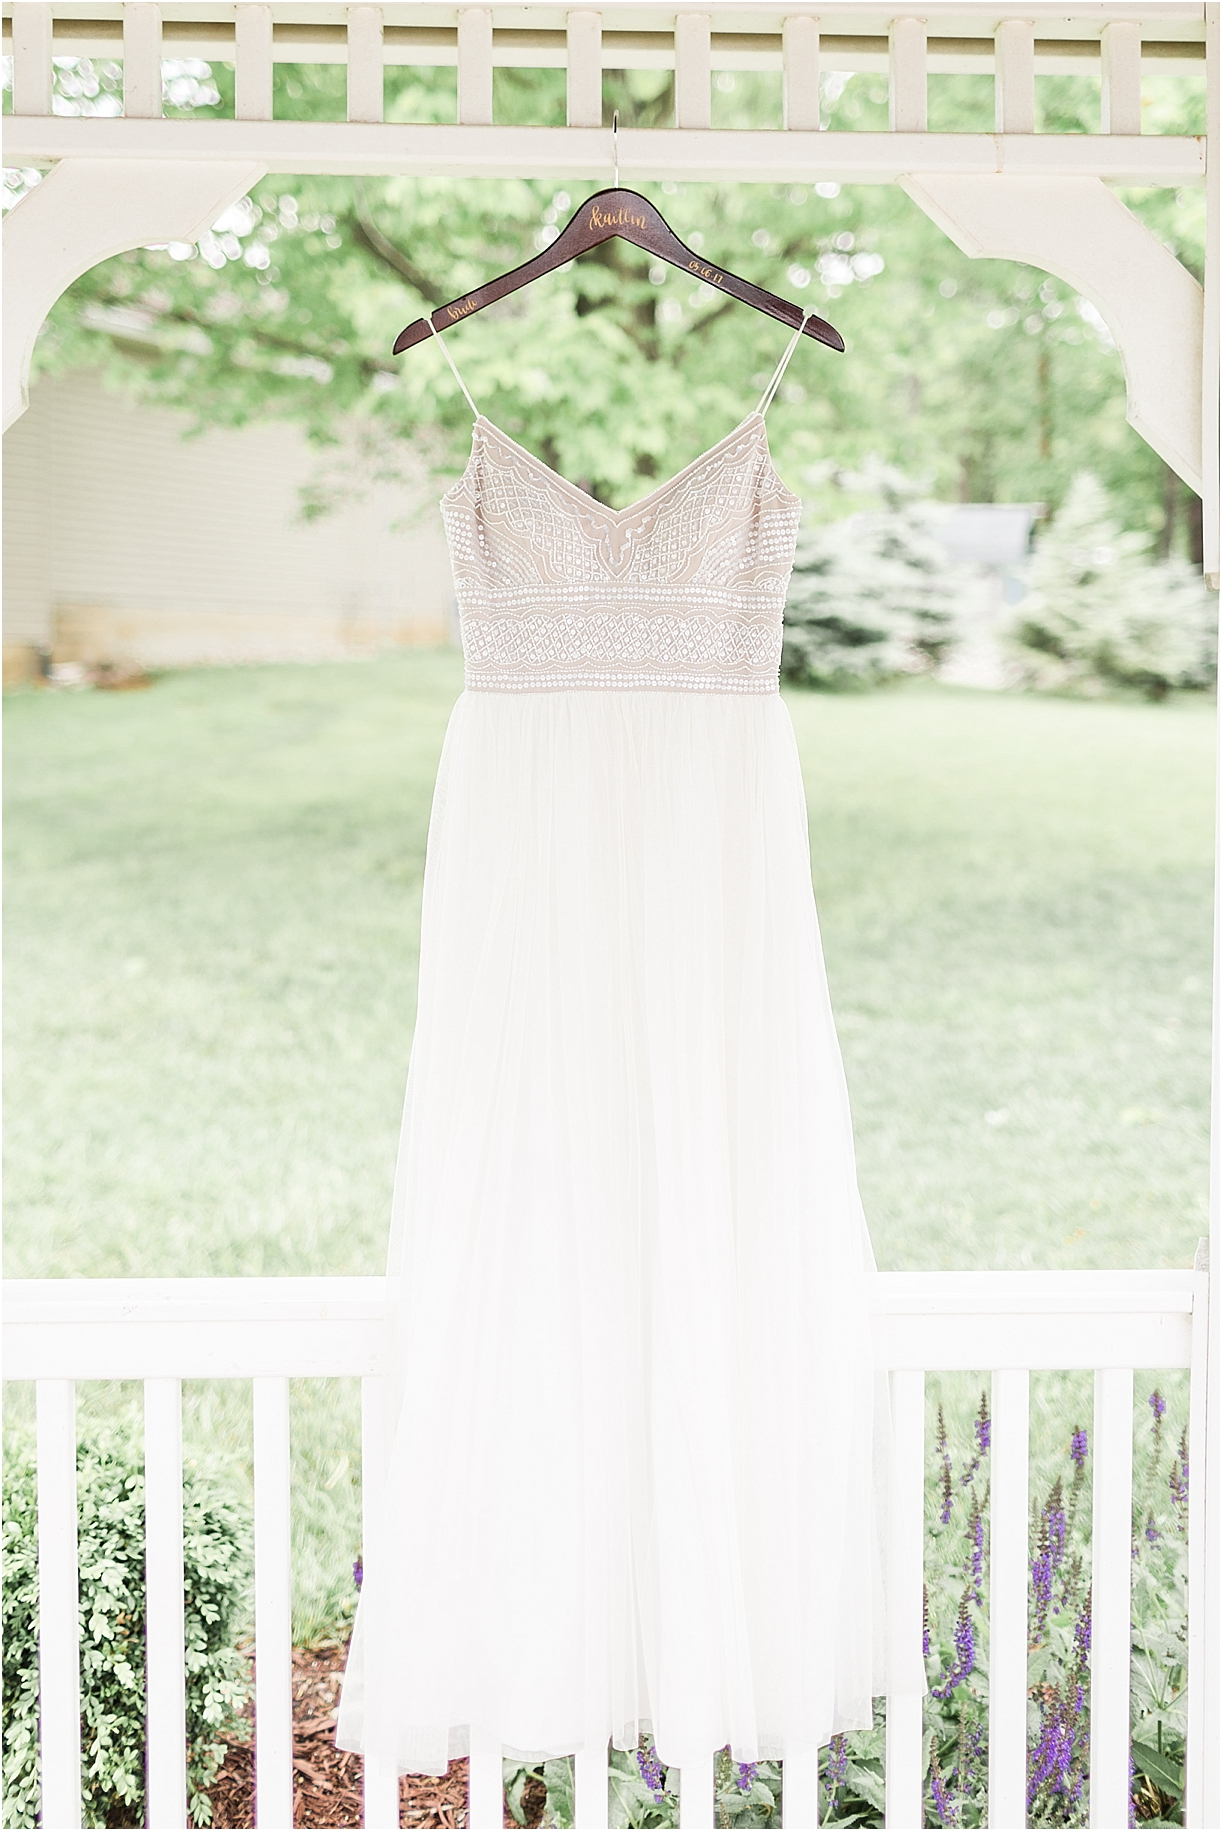 Spring Vineyard Wedding | Hill City Bride Virginia Wedding Blog - Jessica Green Photography - wedding gown